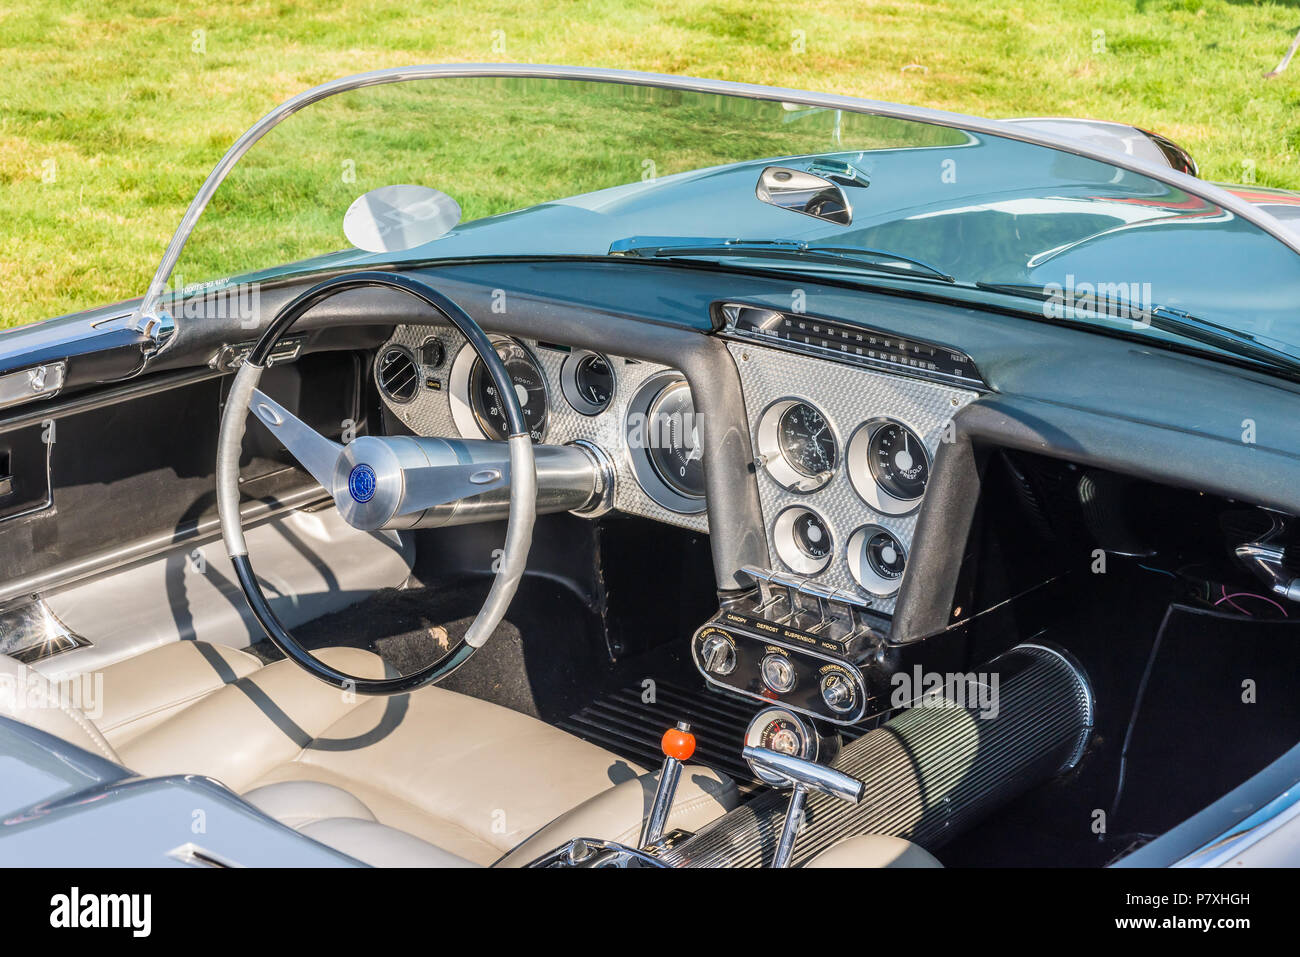 GROSSE POINTE SHORES, MI/USA - JUNE 17, 2018: Close-up of a 1959 Cadillac Cyclone Concept dashboard at the EyesOn Design show, near Detroit, Michigan. - Stock Image